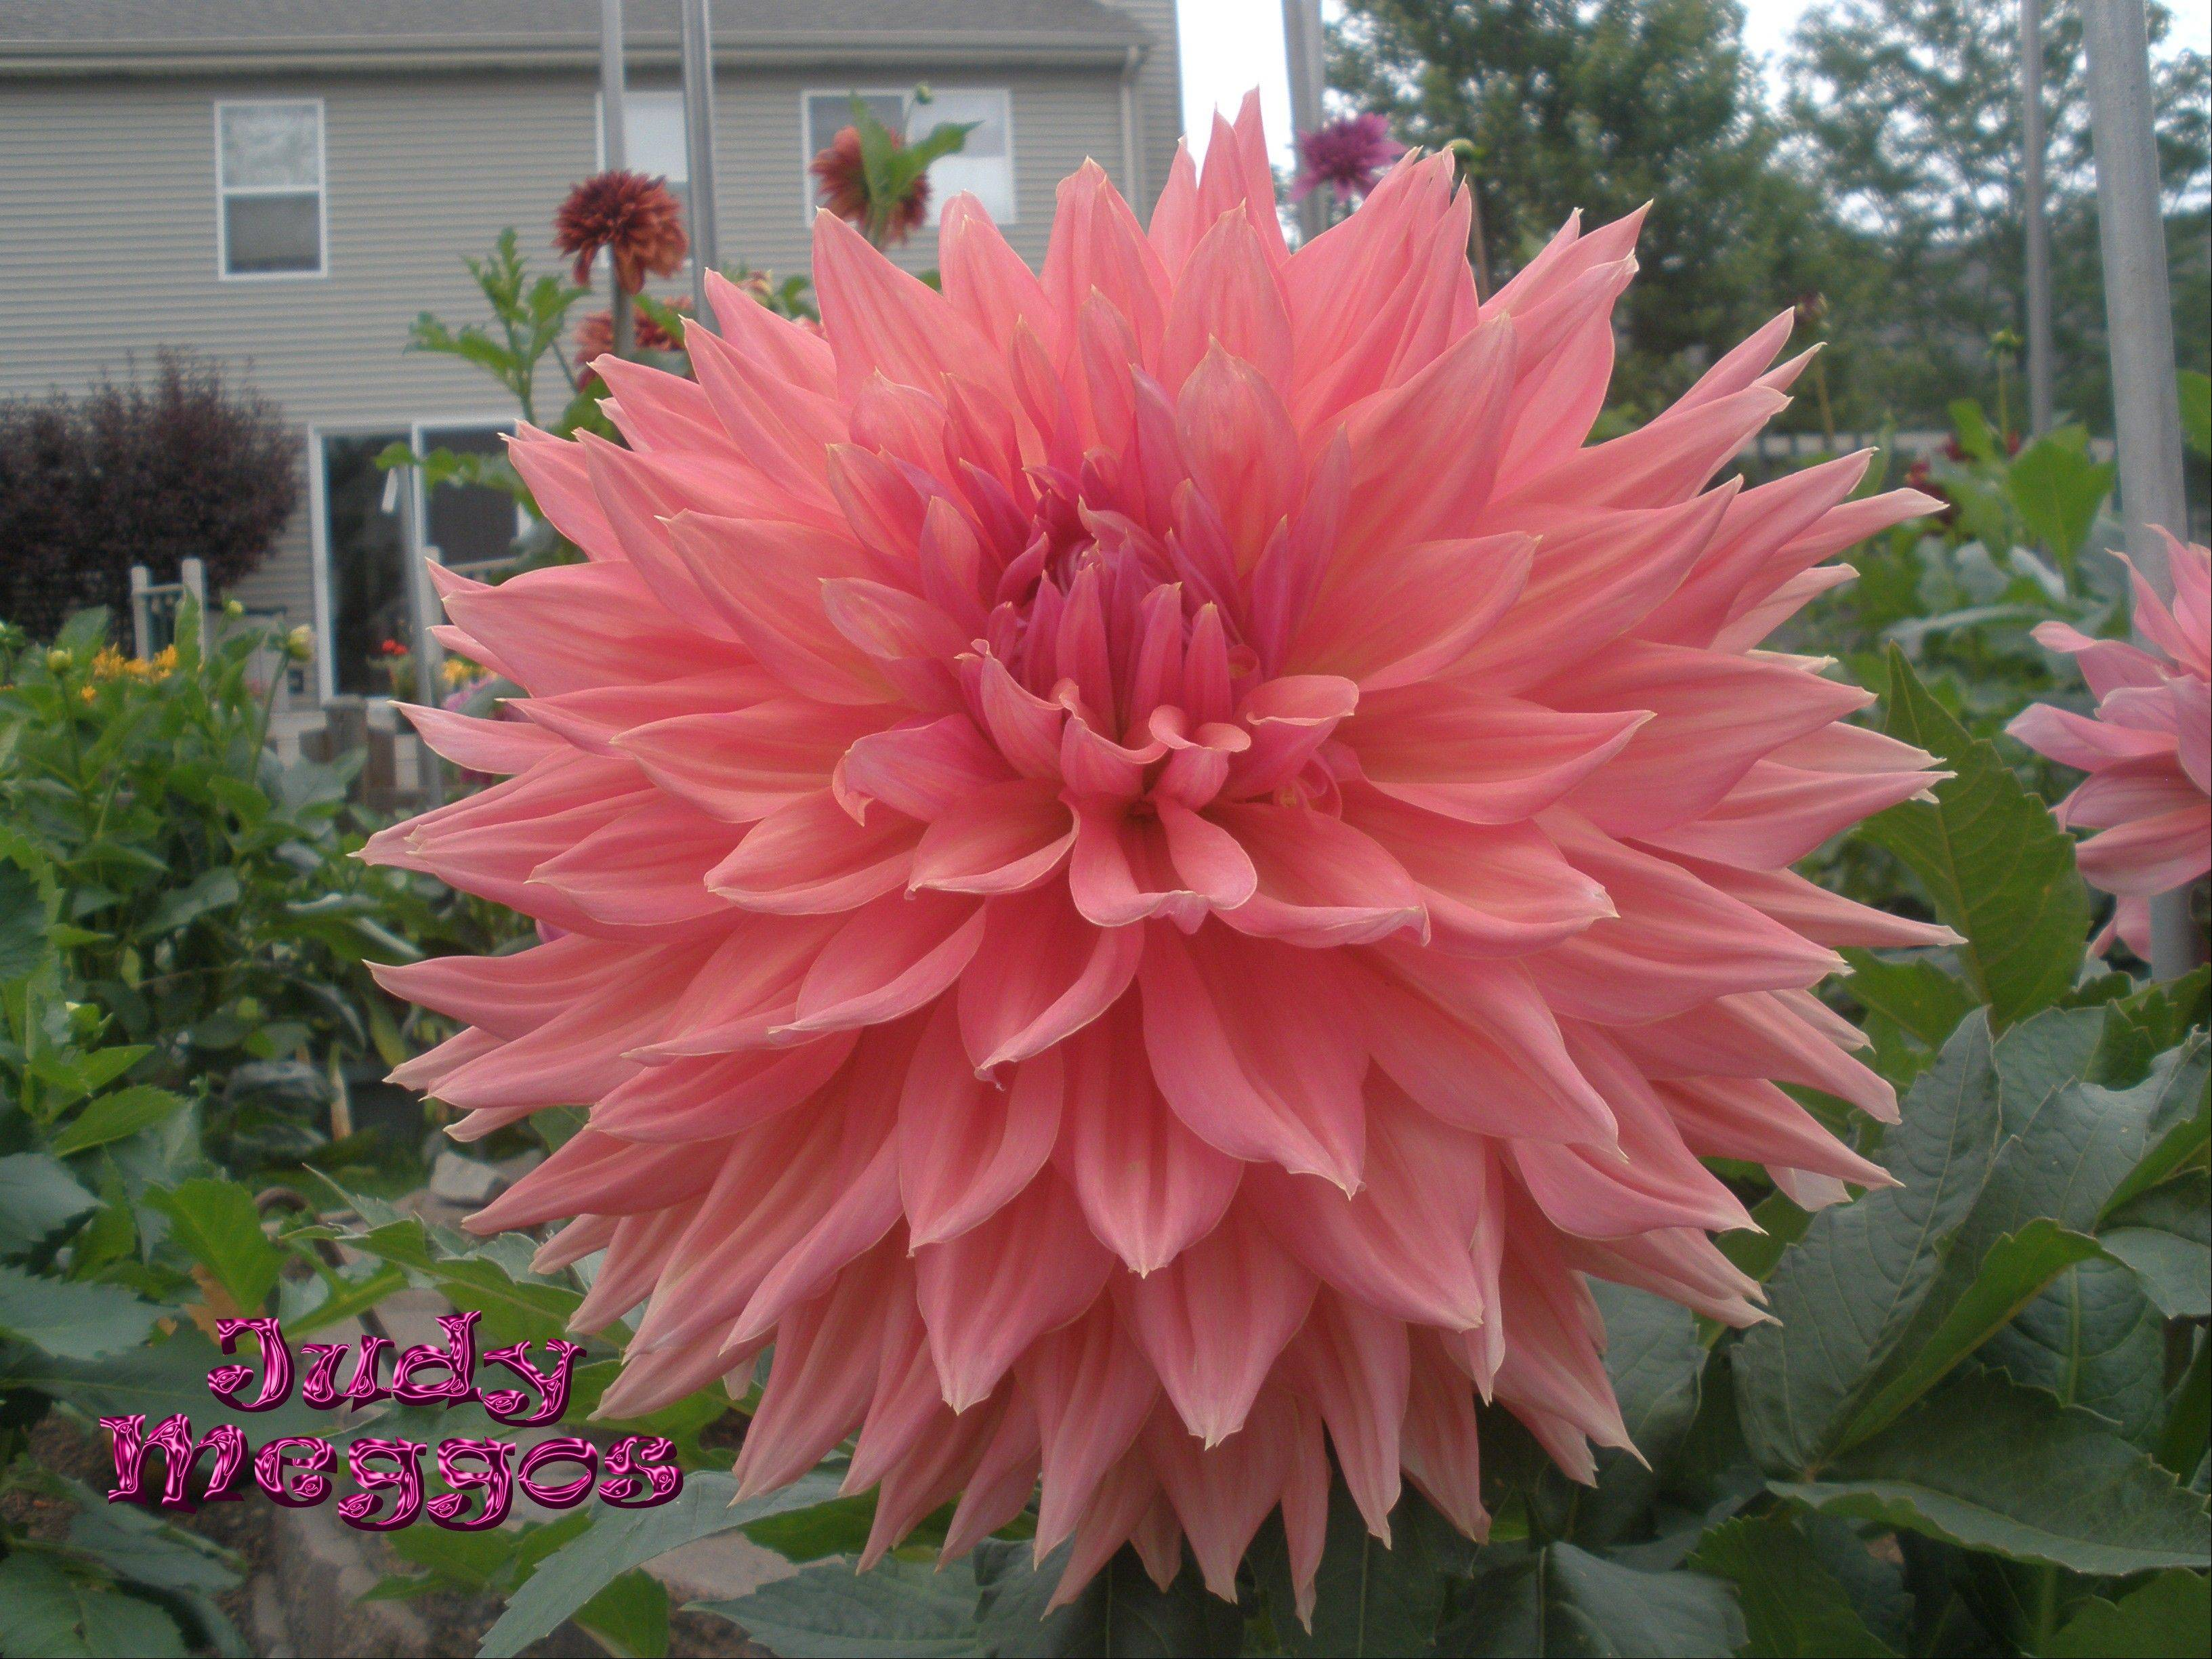 This popular pink dahlia is named after Judy Meggos, Steve's wife.